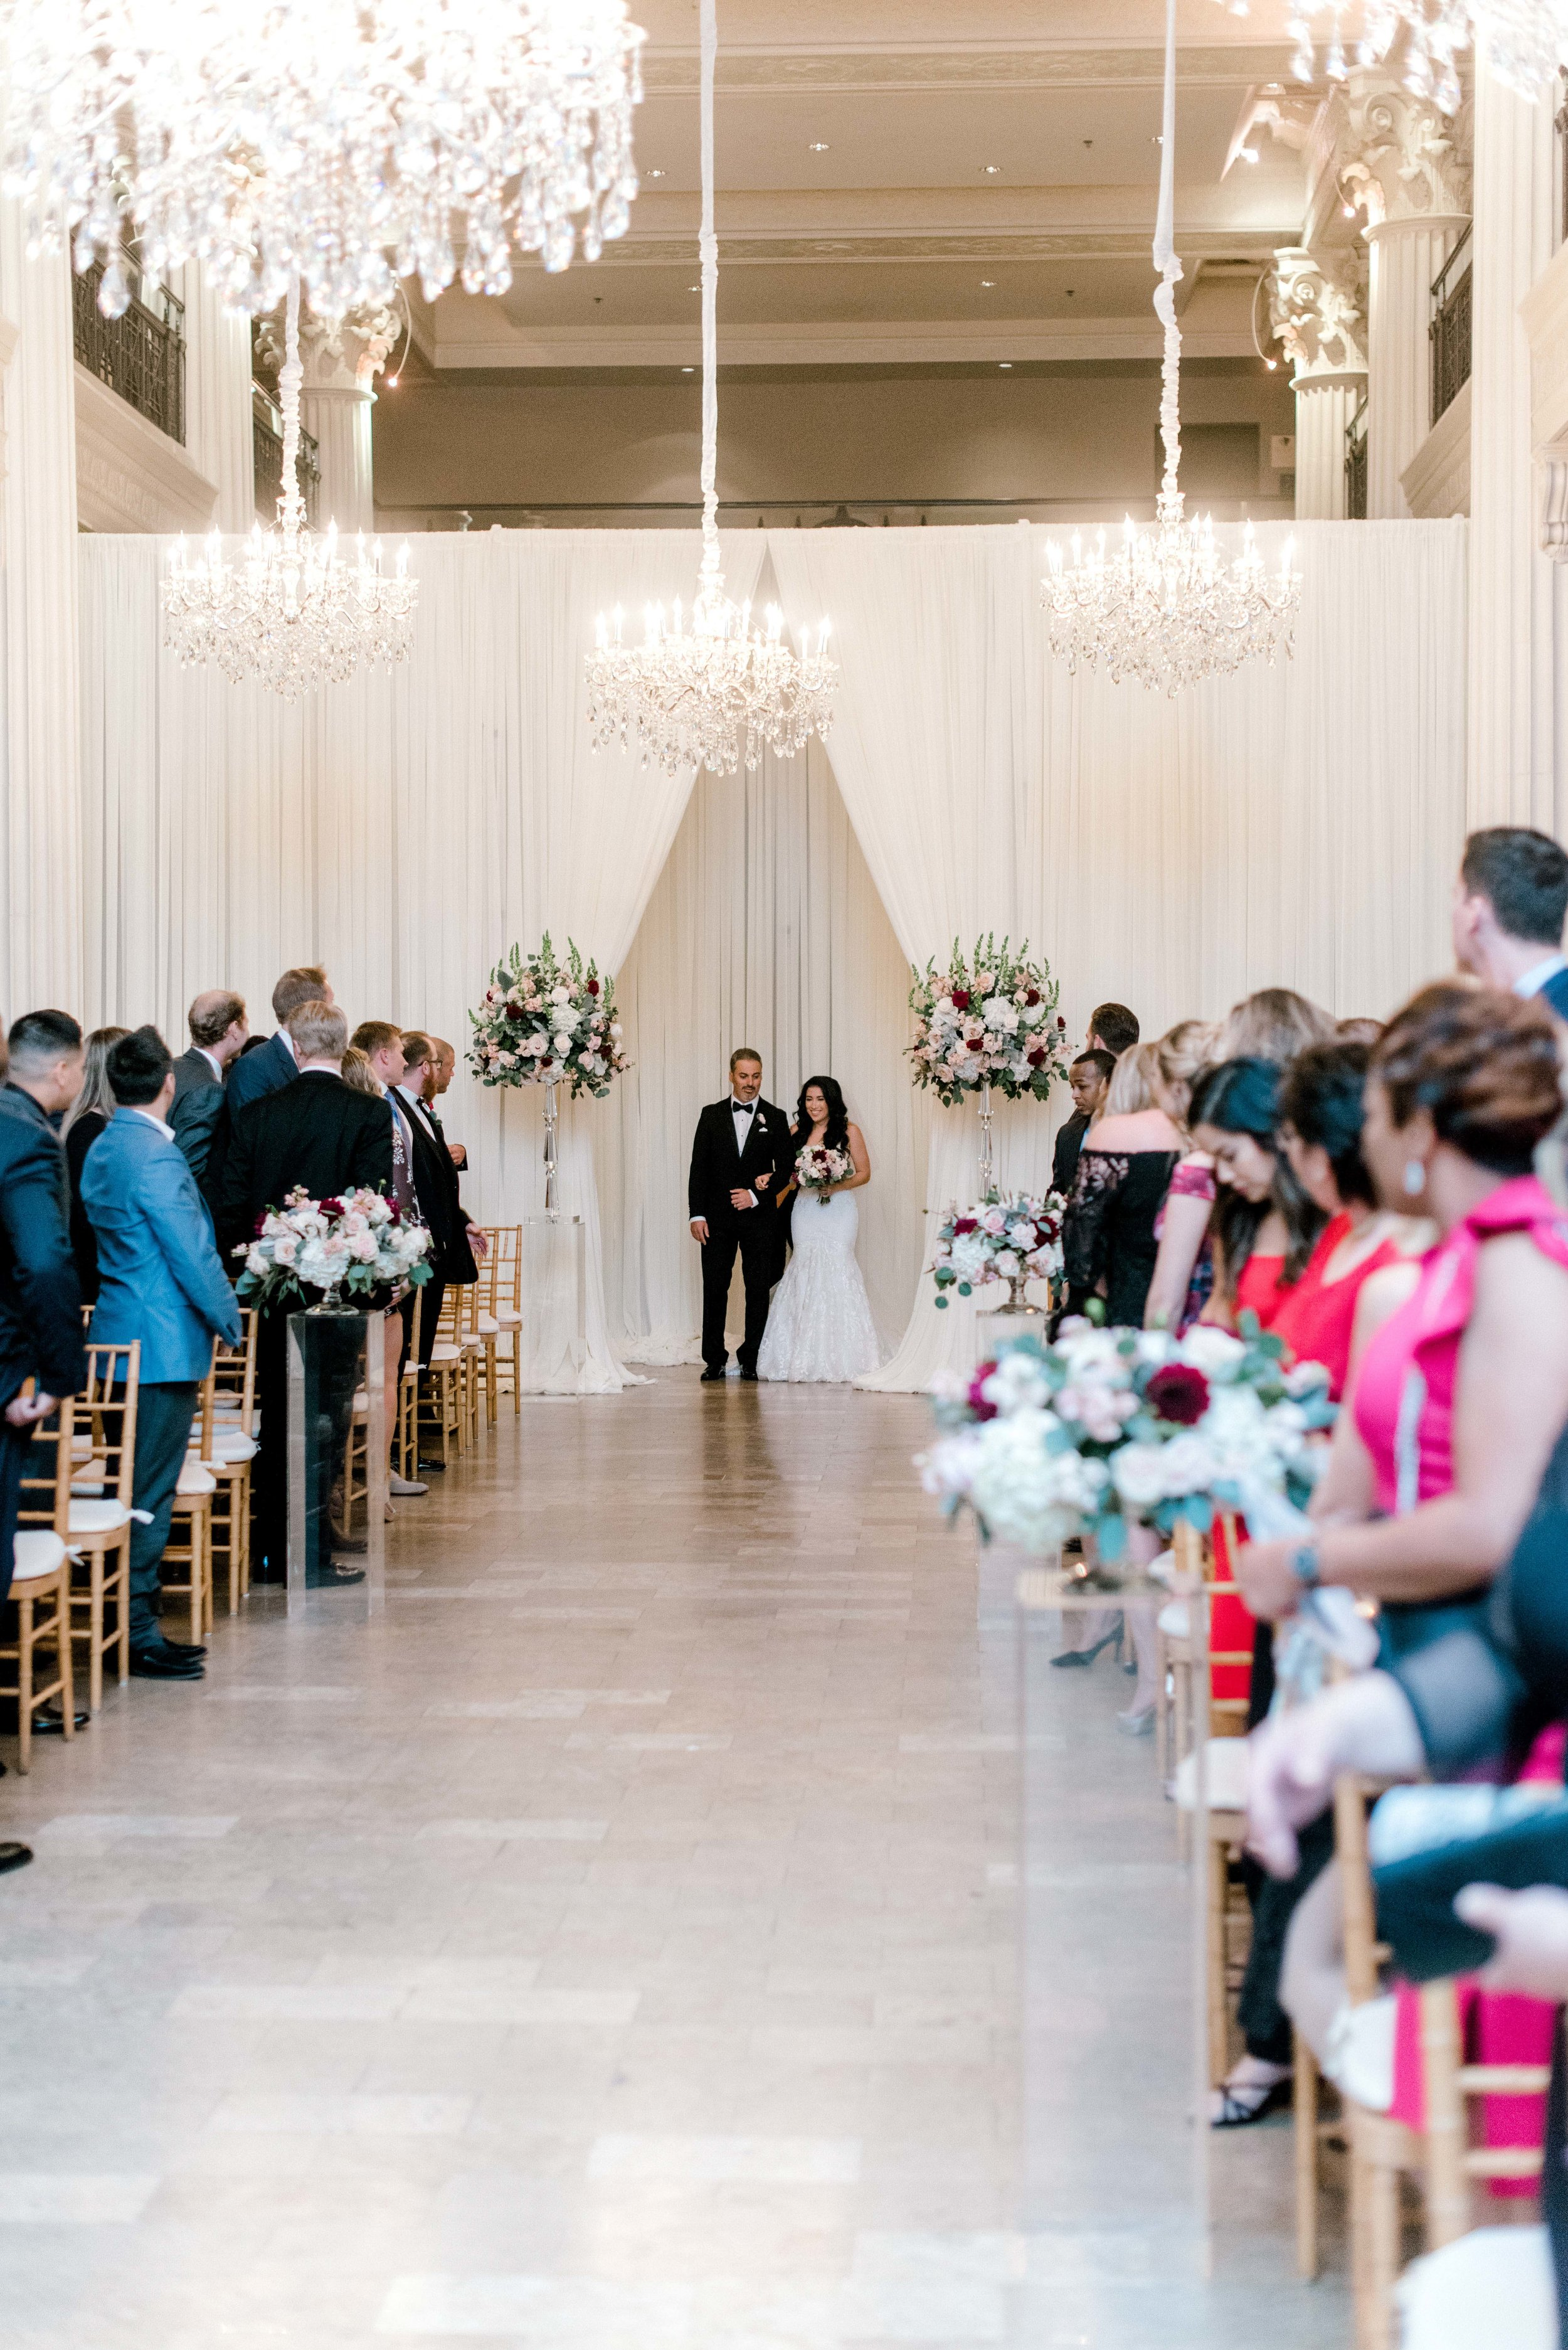 Houston-Wedding-Fine-Art-Film-Photographer-Belle-Events-Belle-of-the-Ball-Anthony-Rendon-Washington-Nationals-The-Corinthian-Style-Me-Pretty-27.jpg